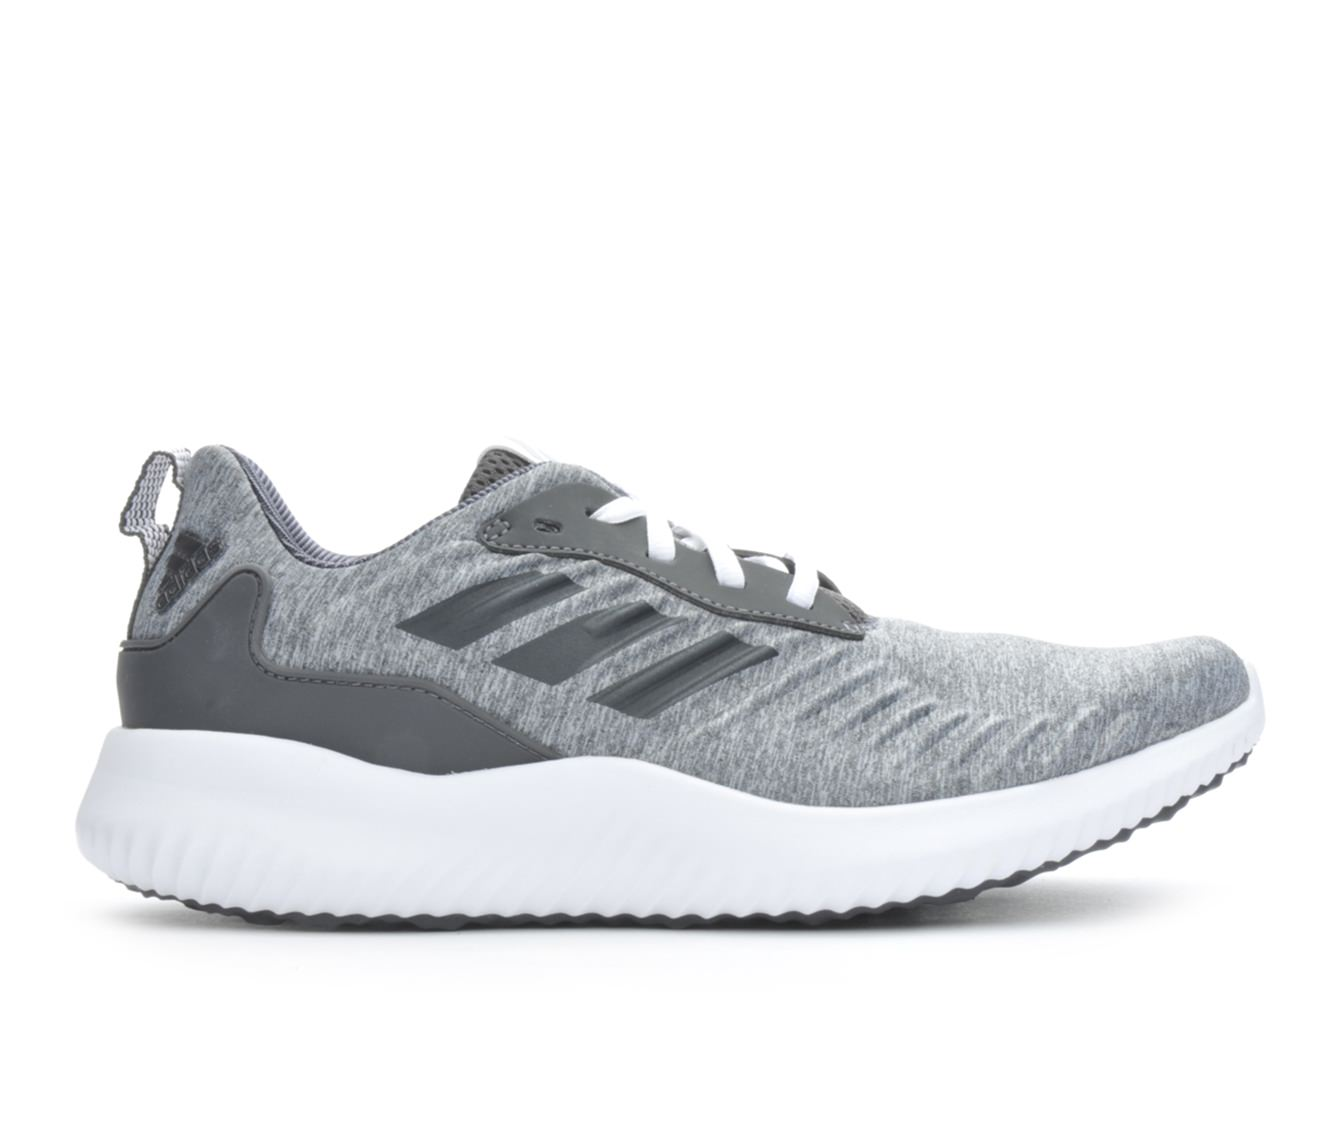 Men's Adidas AlphaBounce RC Running Shoes (Grey - Size 10.5) 1655085